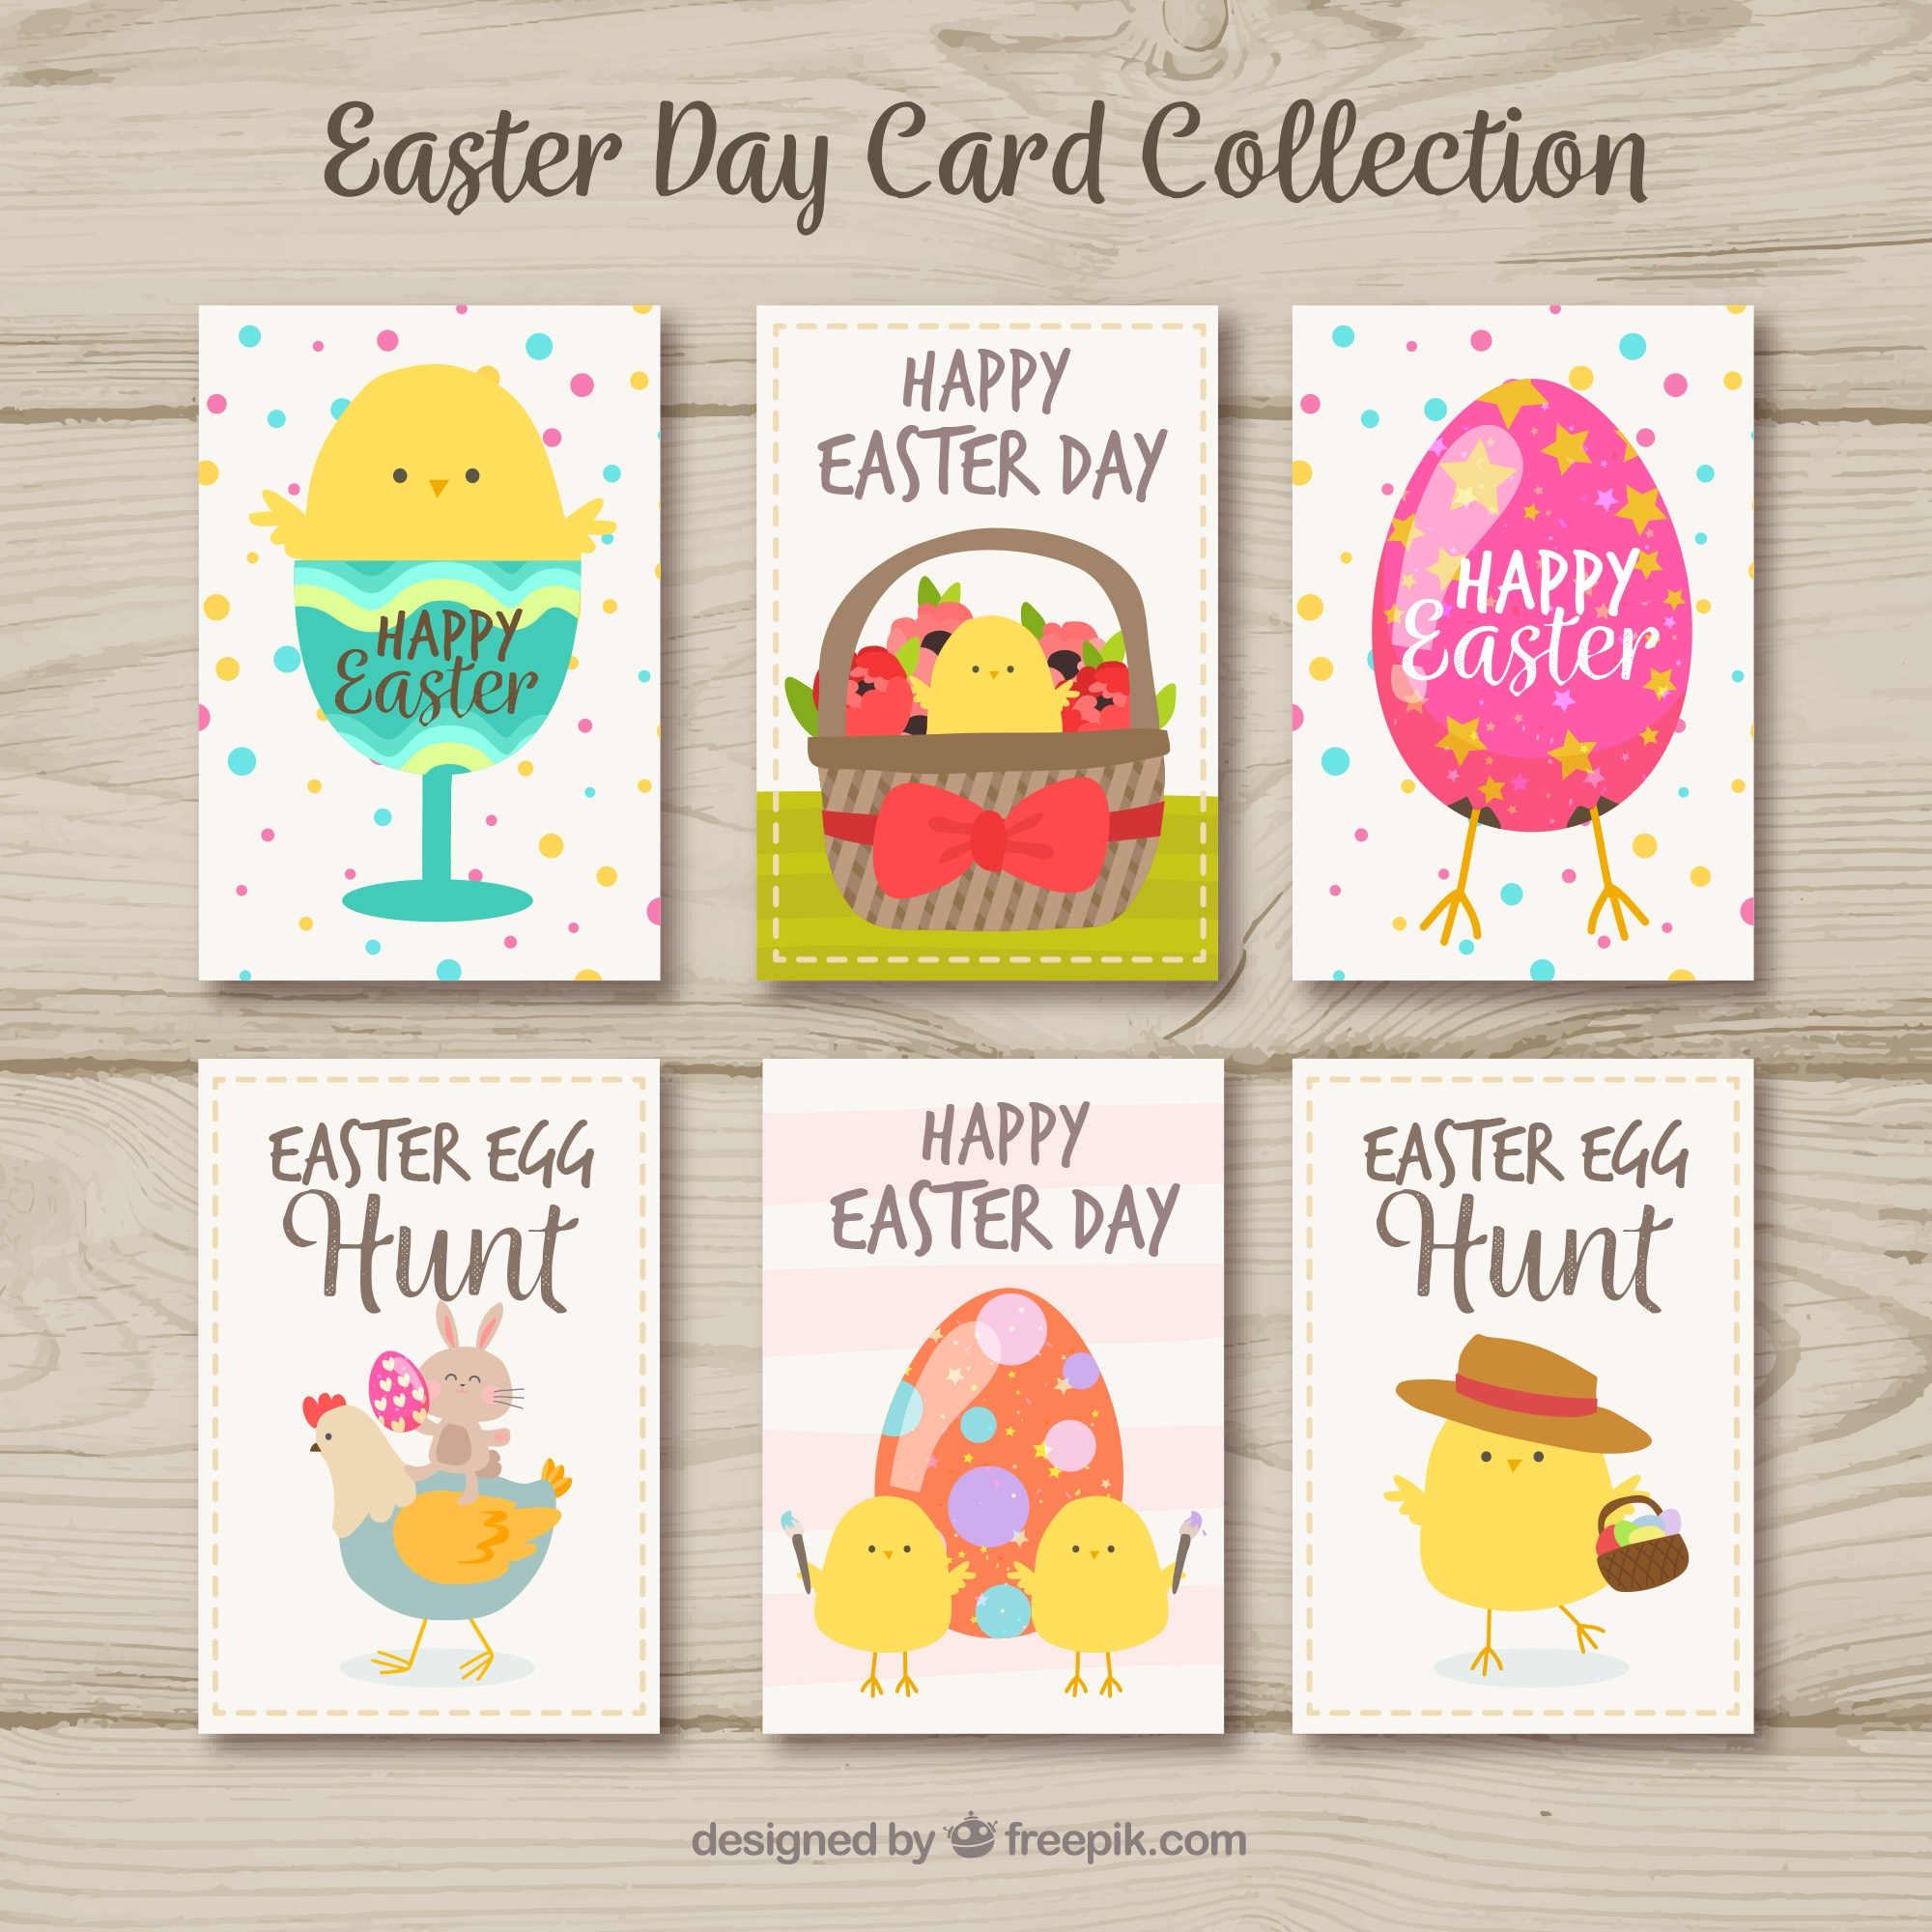 Easter day cards collection with cute birds